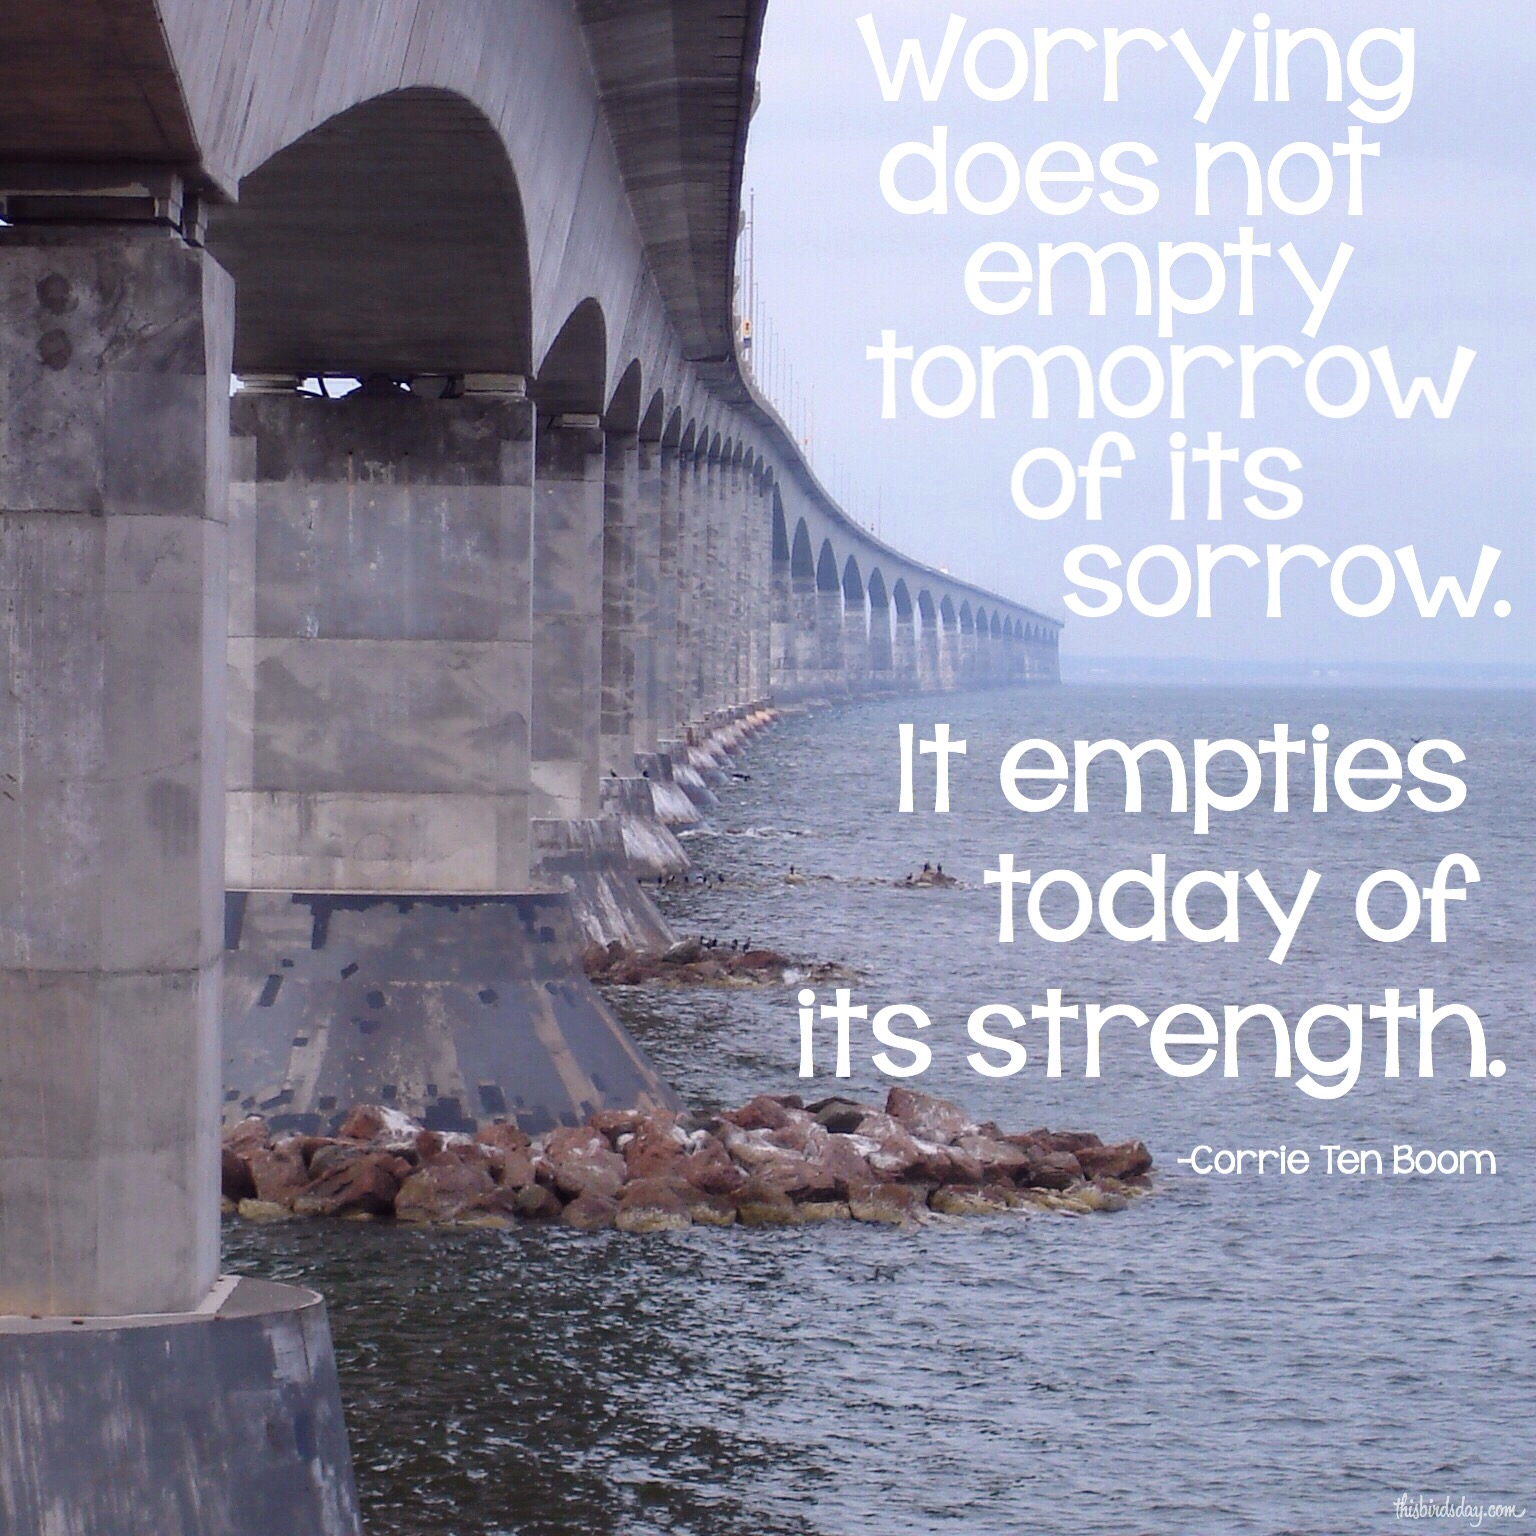 """""""Worrying does not empty tomorrow of its sorrow. It empties today of its strength."""" Corrie Ten Boom Photo copyright Sheri Landry"""